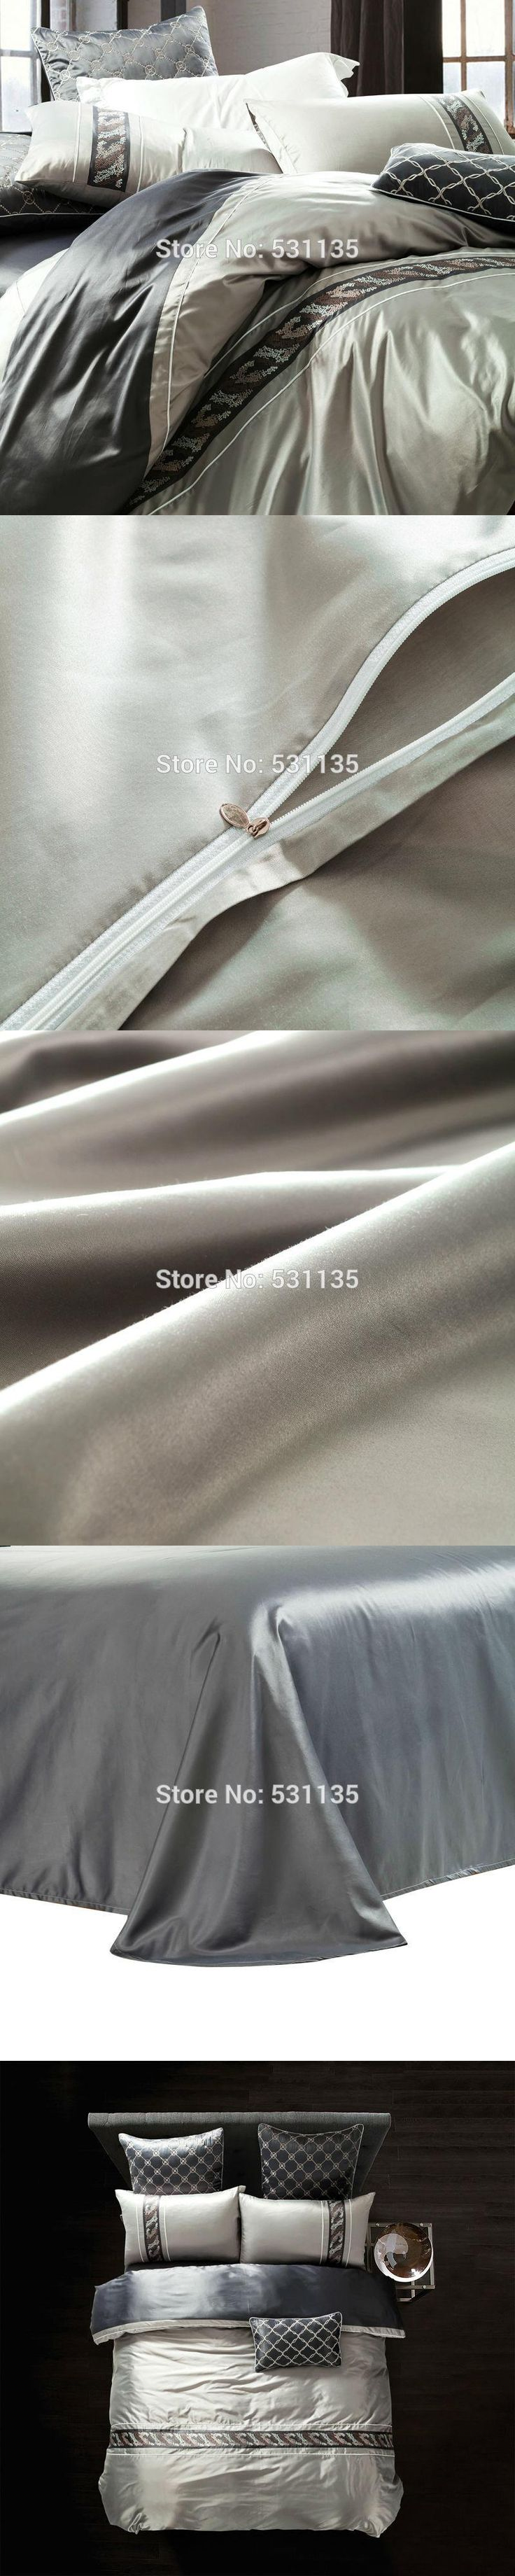 Luxury Bedding sets silver gray Linens Polyester and Cotton Blend Queen King size duvet cover sets